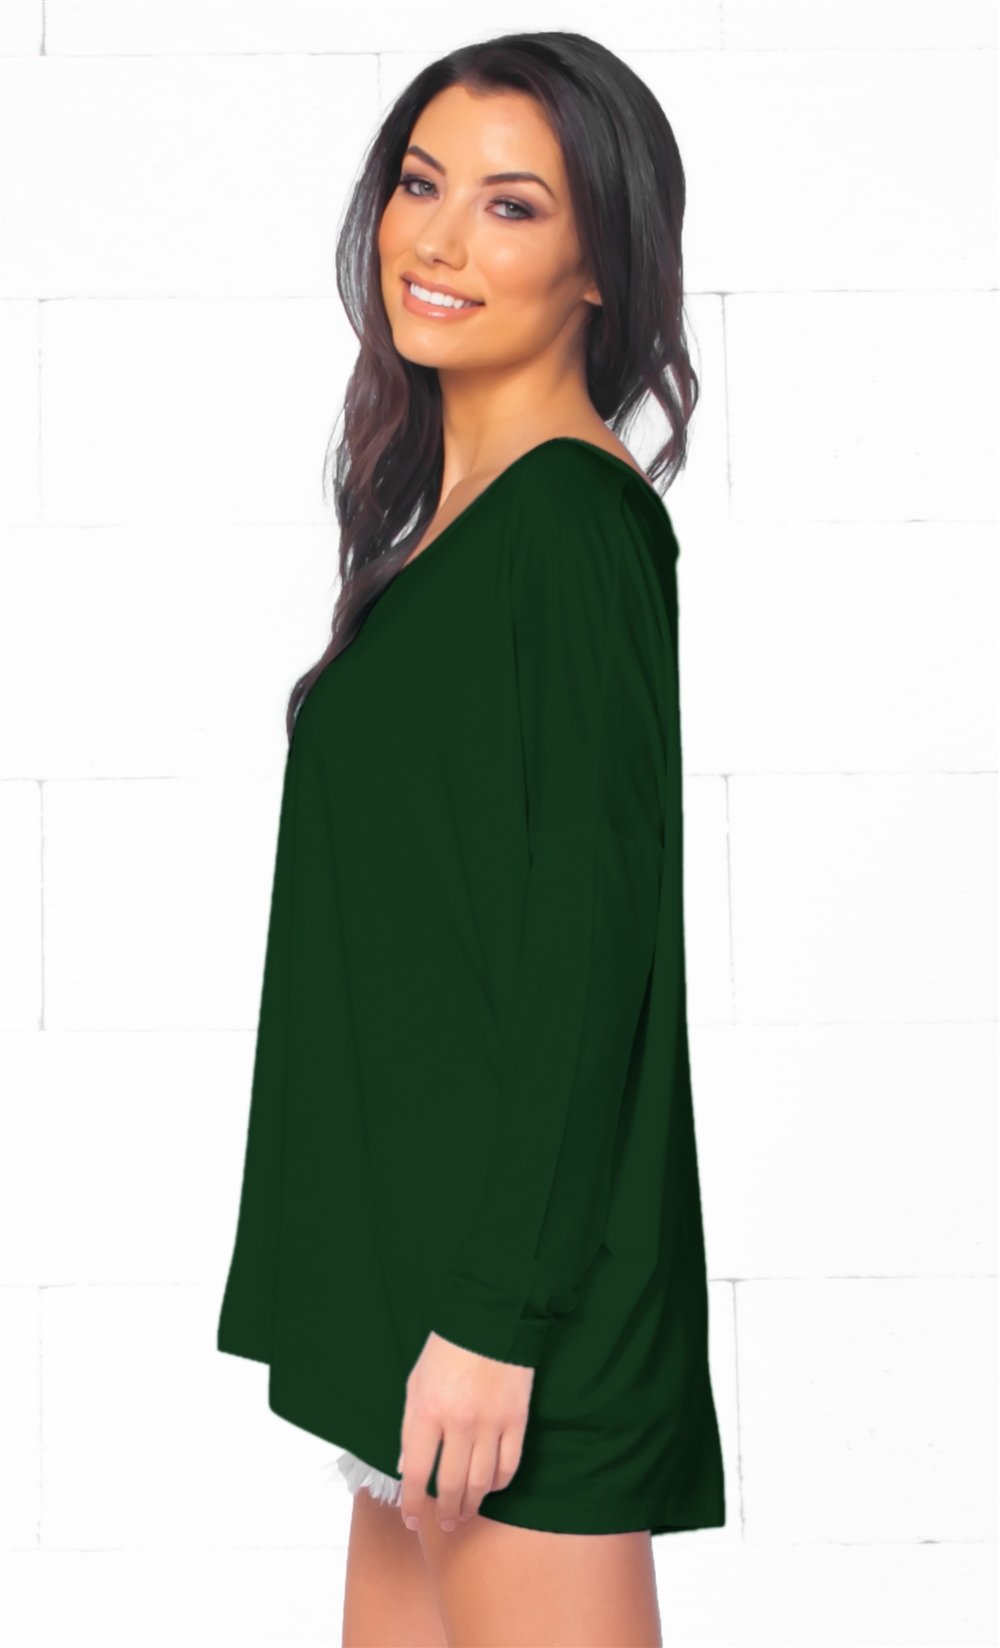 Piko 1988 Christmas Tree Holiday Dark Green Long Dolman Sleeve V Neck Piko Bamboo Basic Loose Tunic Tee Top - Limited Edition